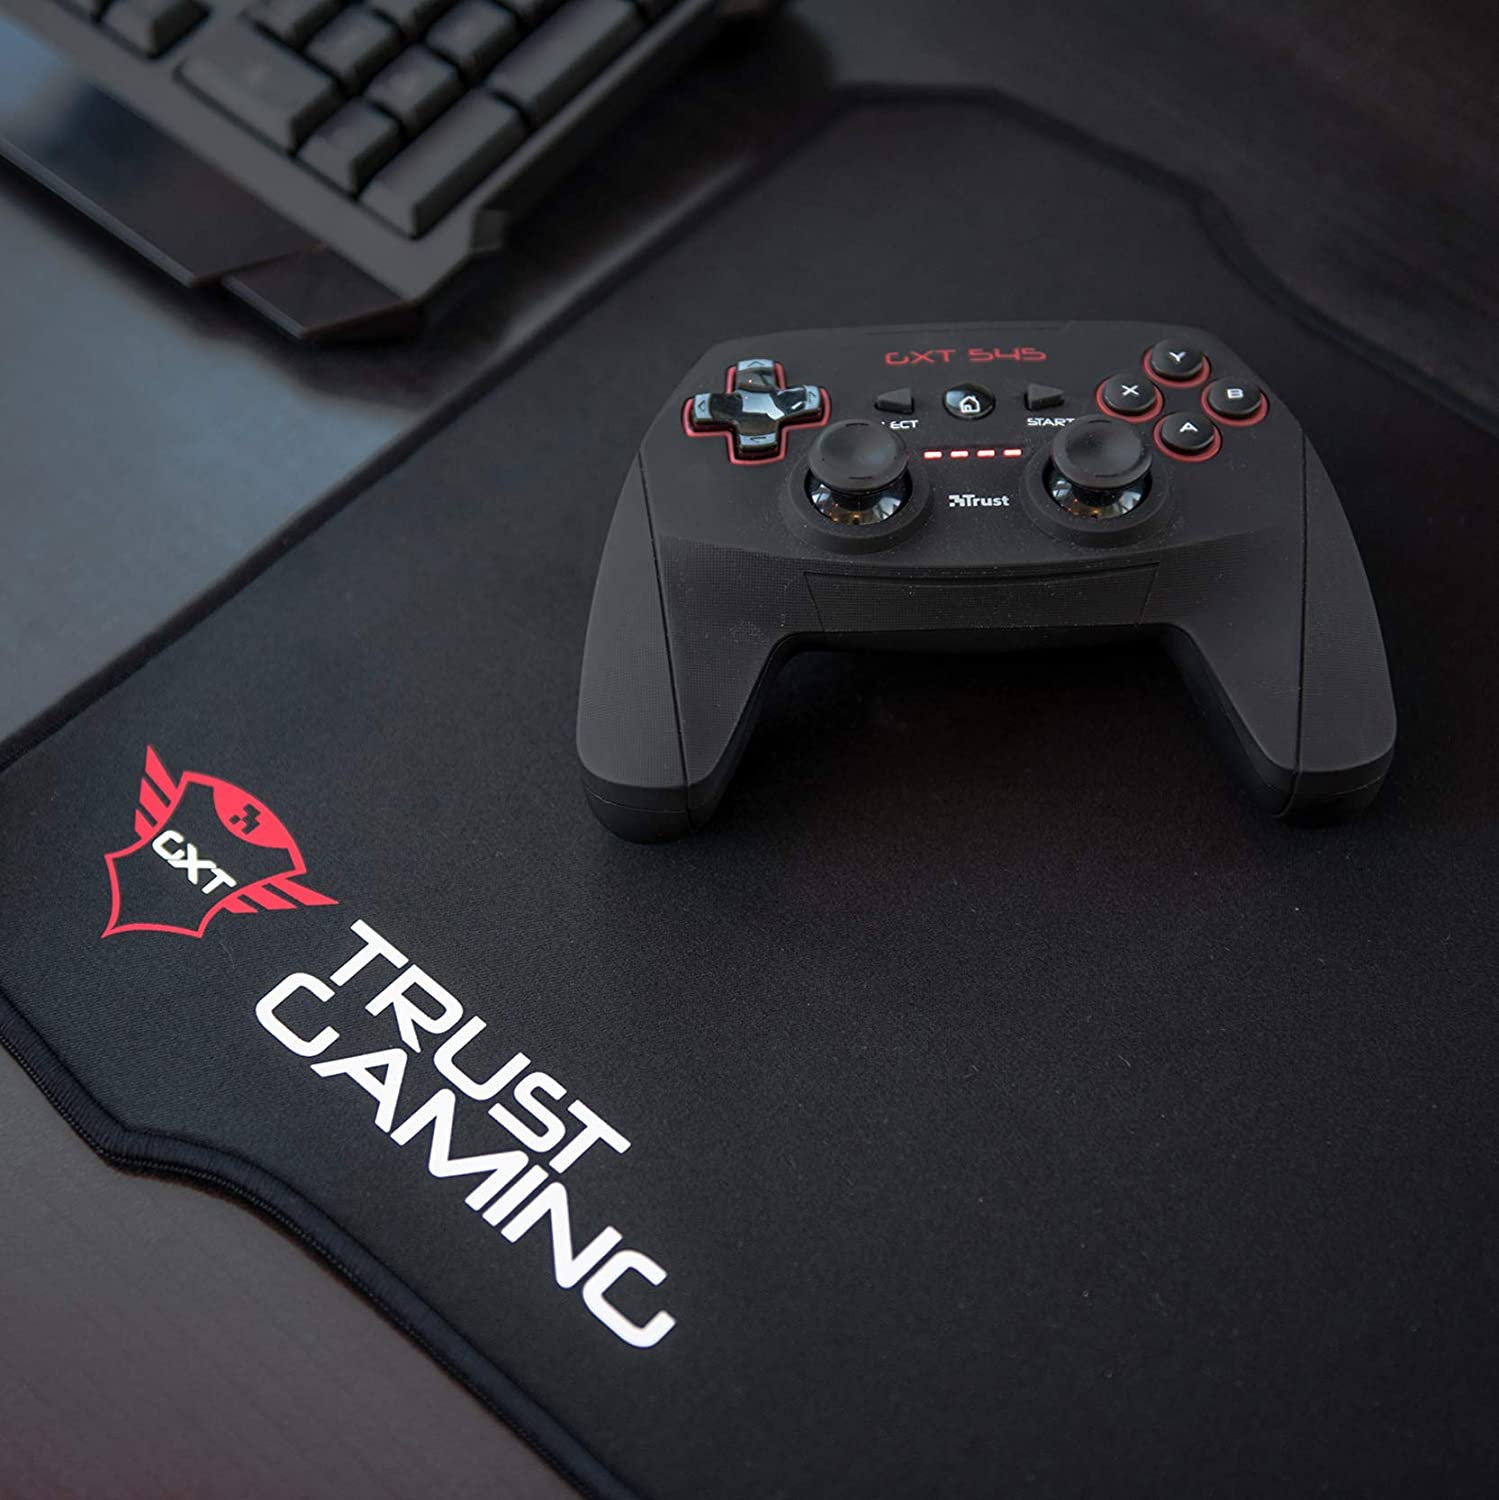 Trust Gxt 207 Xxl Gaming Mouse Pad 395 X 315 Mm Computers Accessories